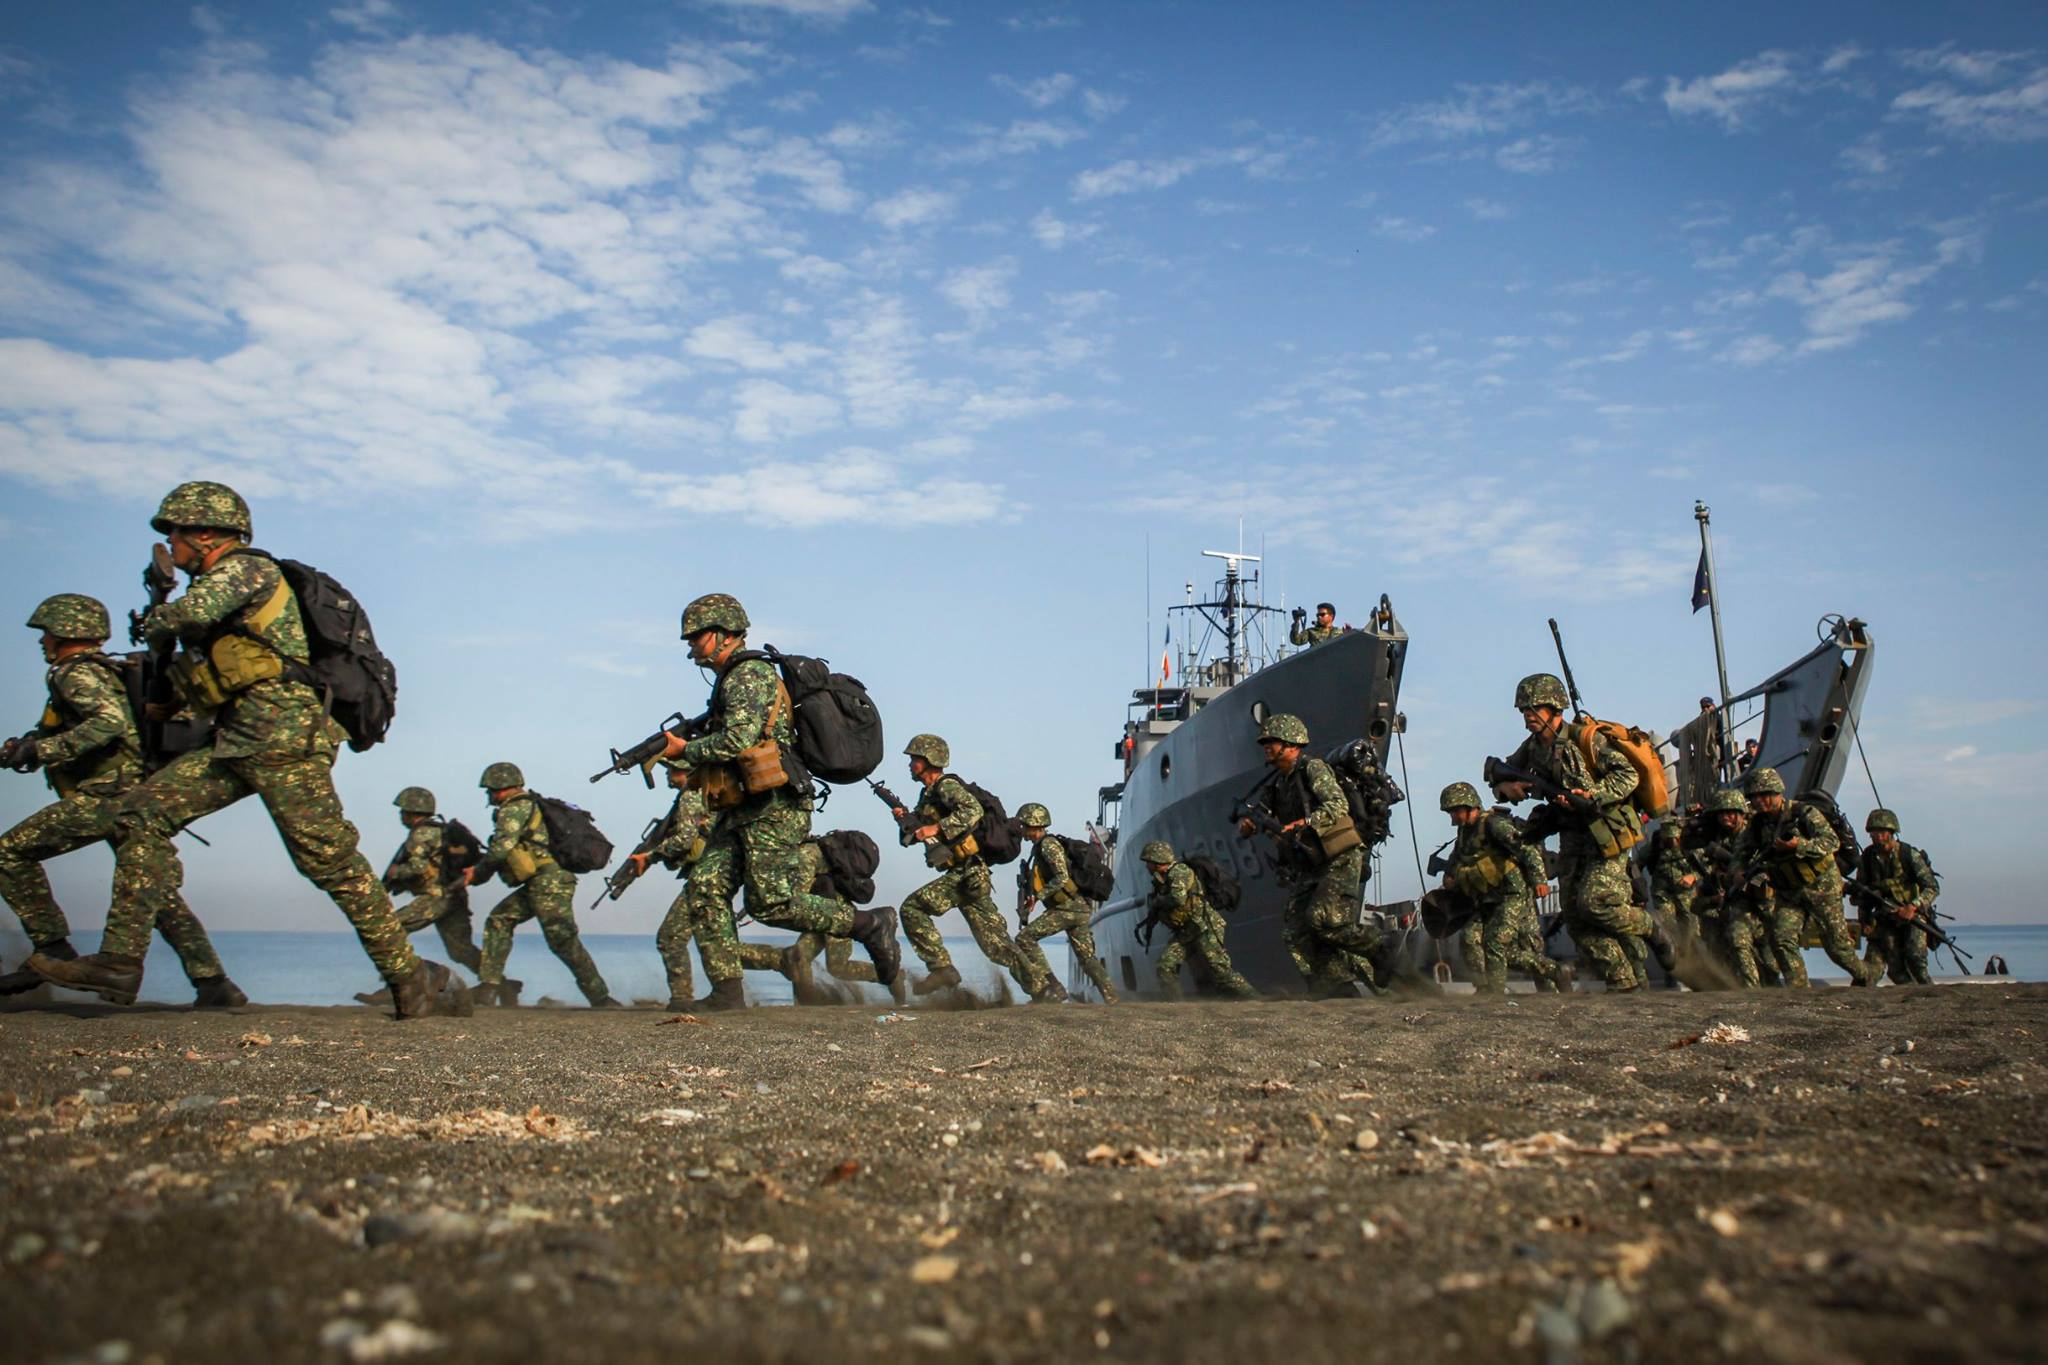 """Duterte had said if the U.S. builds an arms depot """"I will consider a review and maybe ultimately abrogate"""" the pact all together.(File photo by U.S. Marine Corps photo by Cpl. Hilda M. Becerra / Released)"""